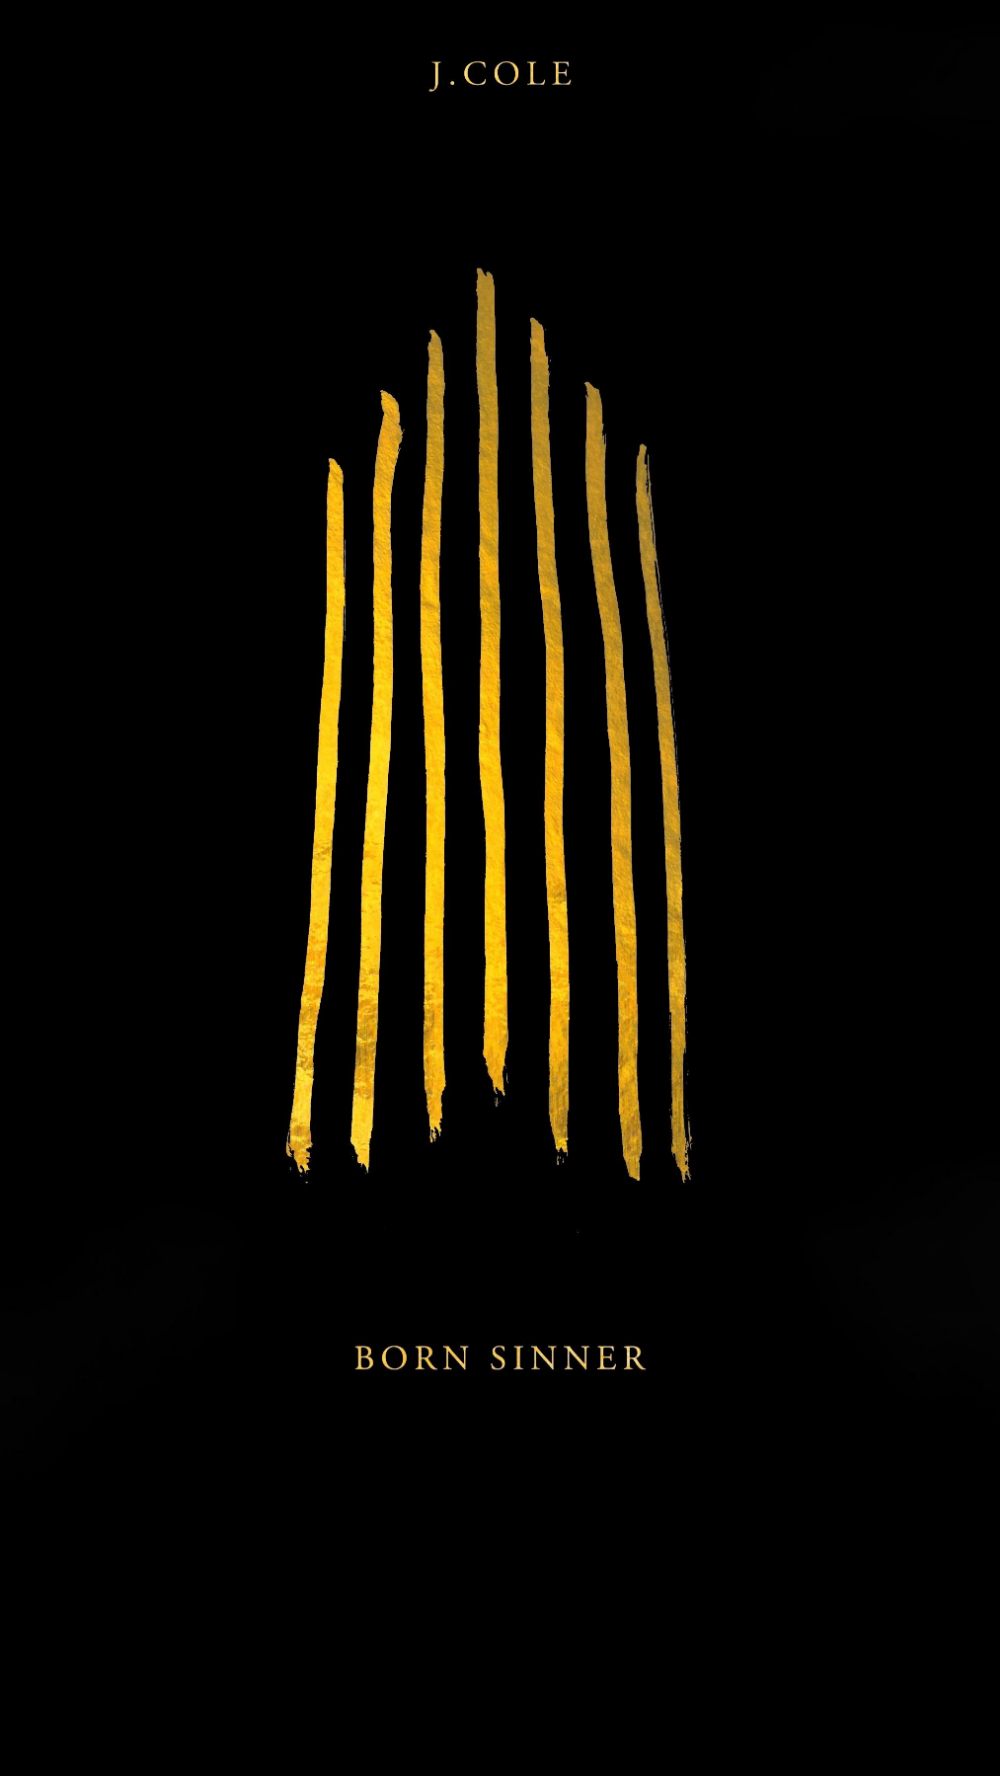 J Cole Logo Google Search Cool Wallpapers For Phones J Cole Born Sinner J Cole